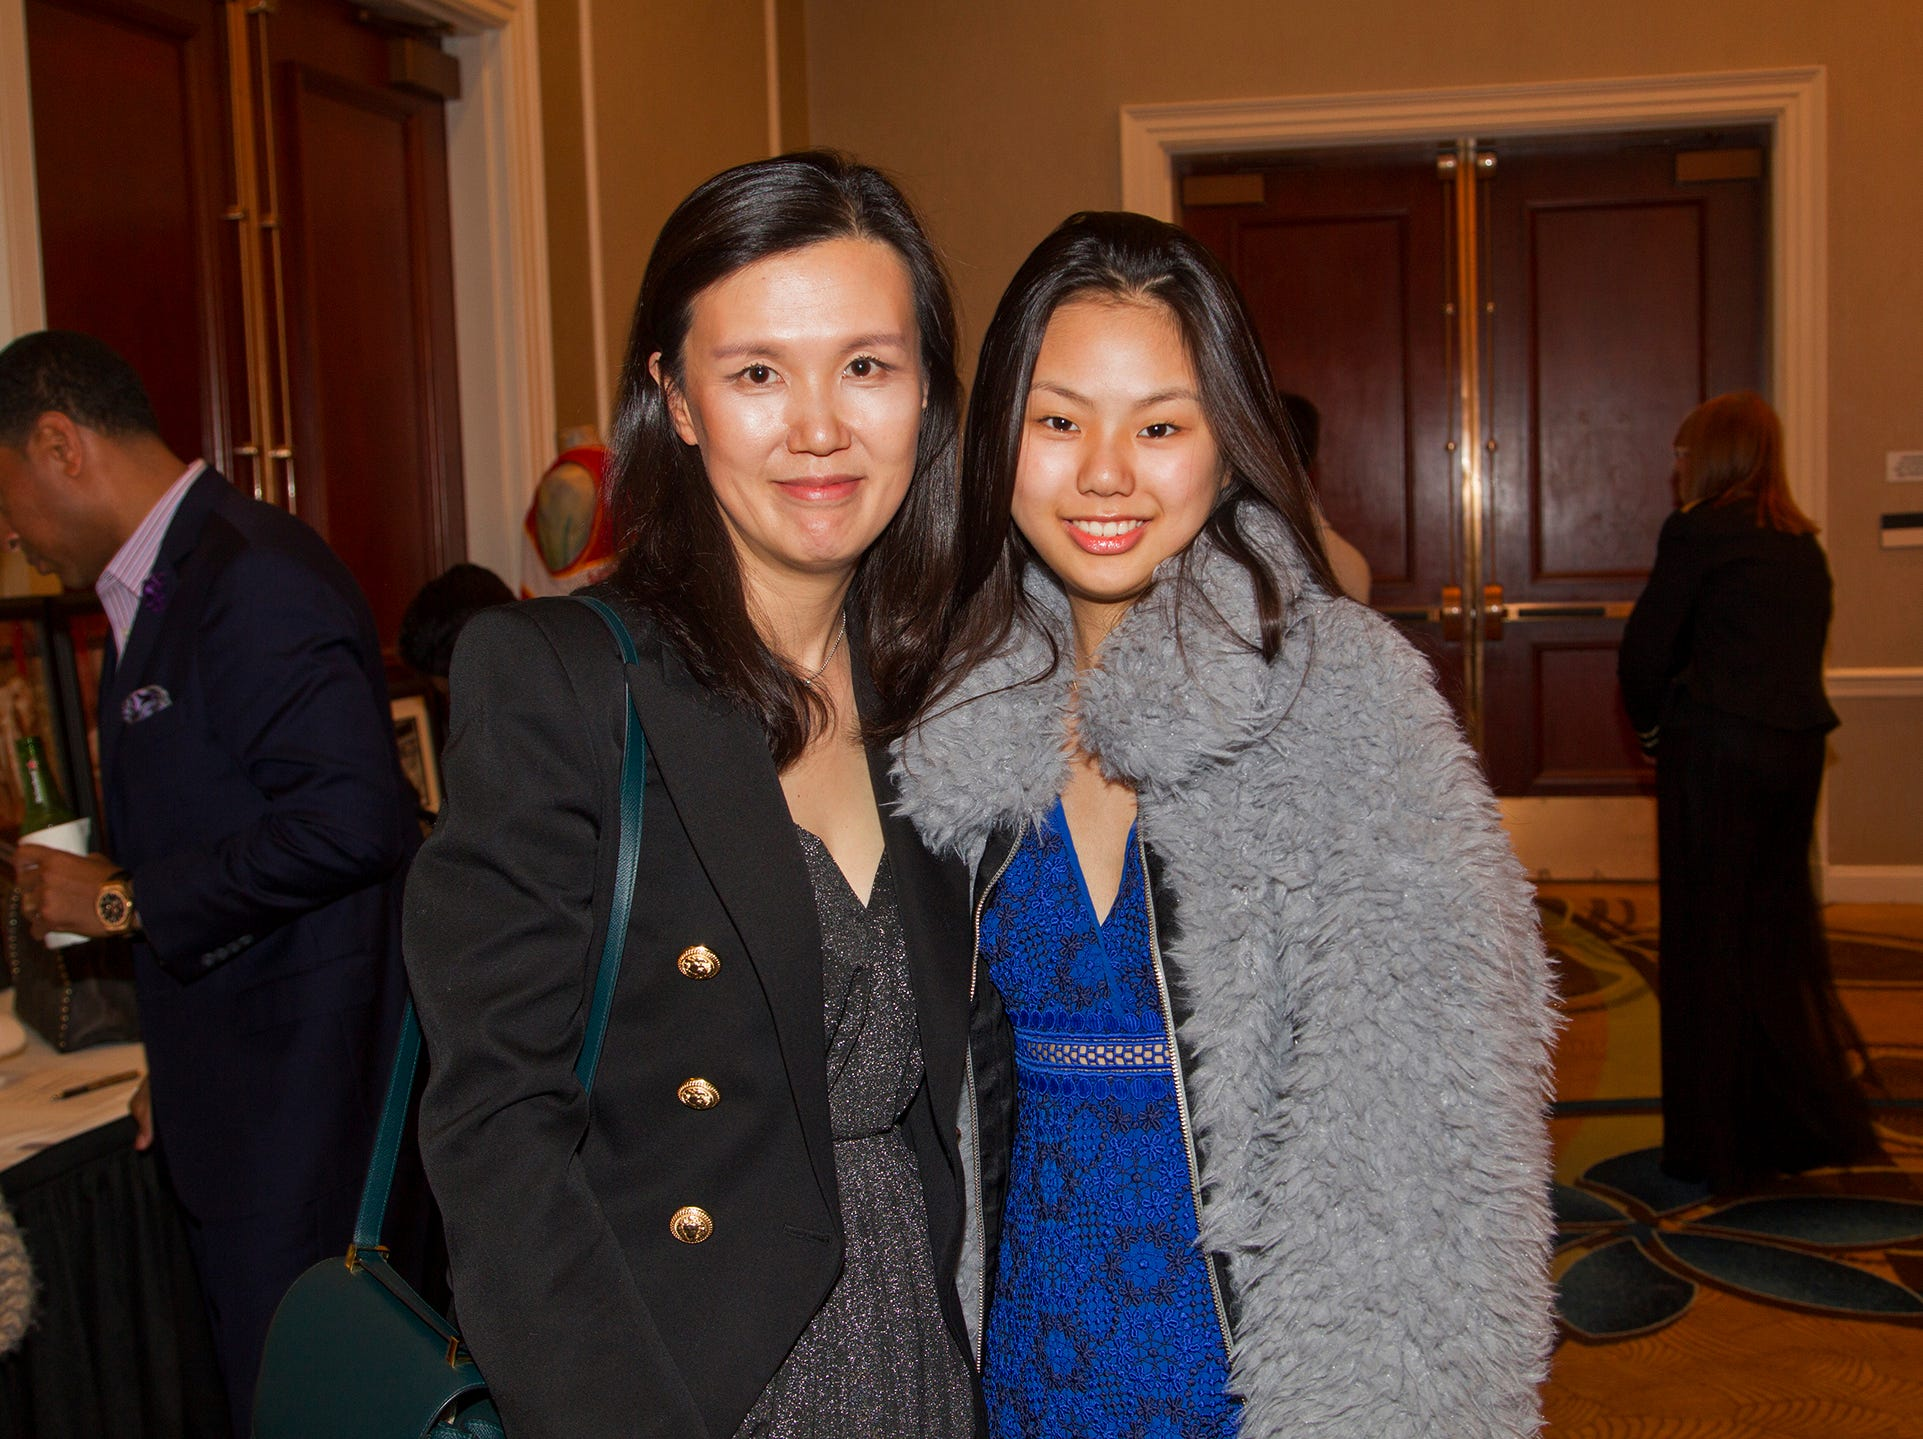 Evenly Choe, Eun Jung. Jessie Banks Foundation holds 16th annual Scholarship Awards Gala in Teaneck. 11/09/2018